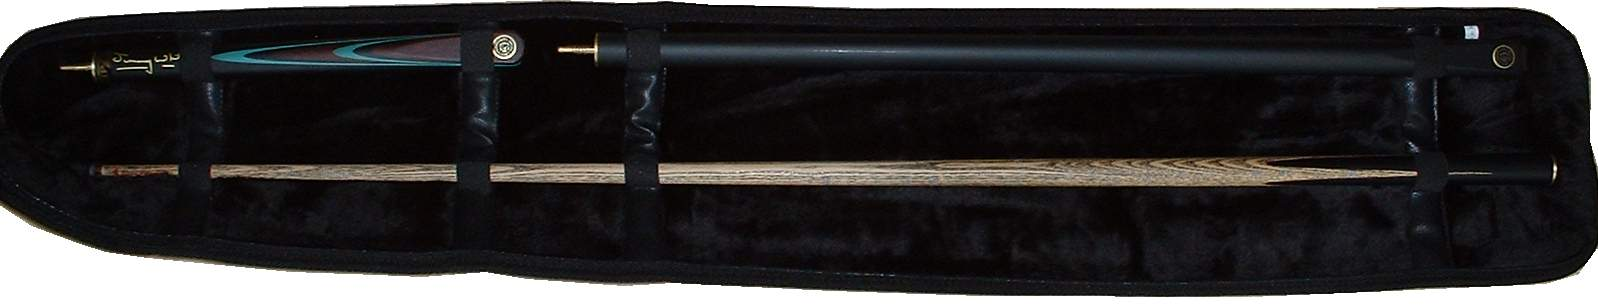 snooker cases 3/4 size cues